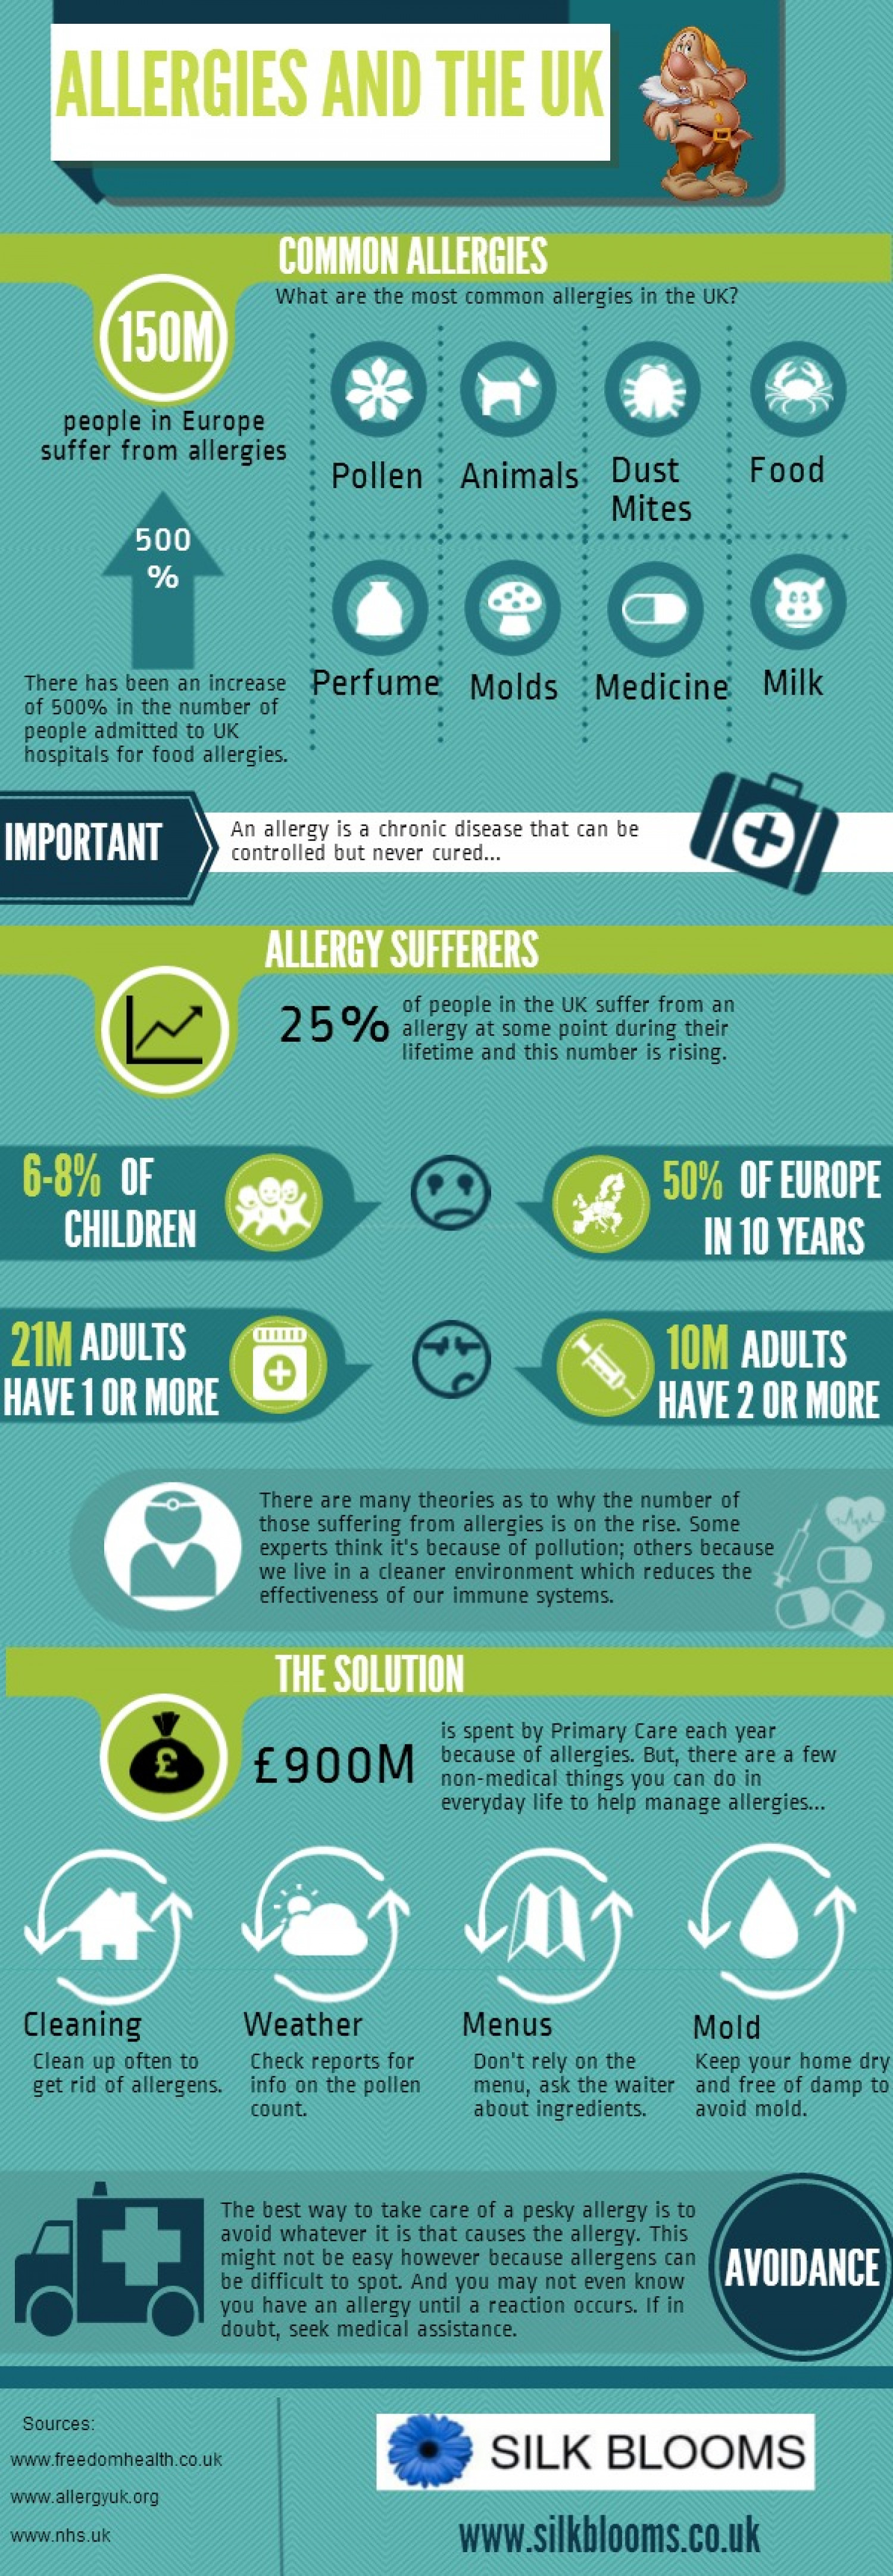 Allergies and the UK Infographic